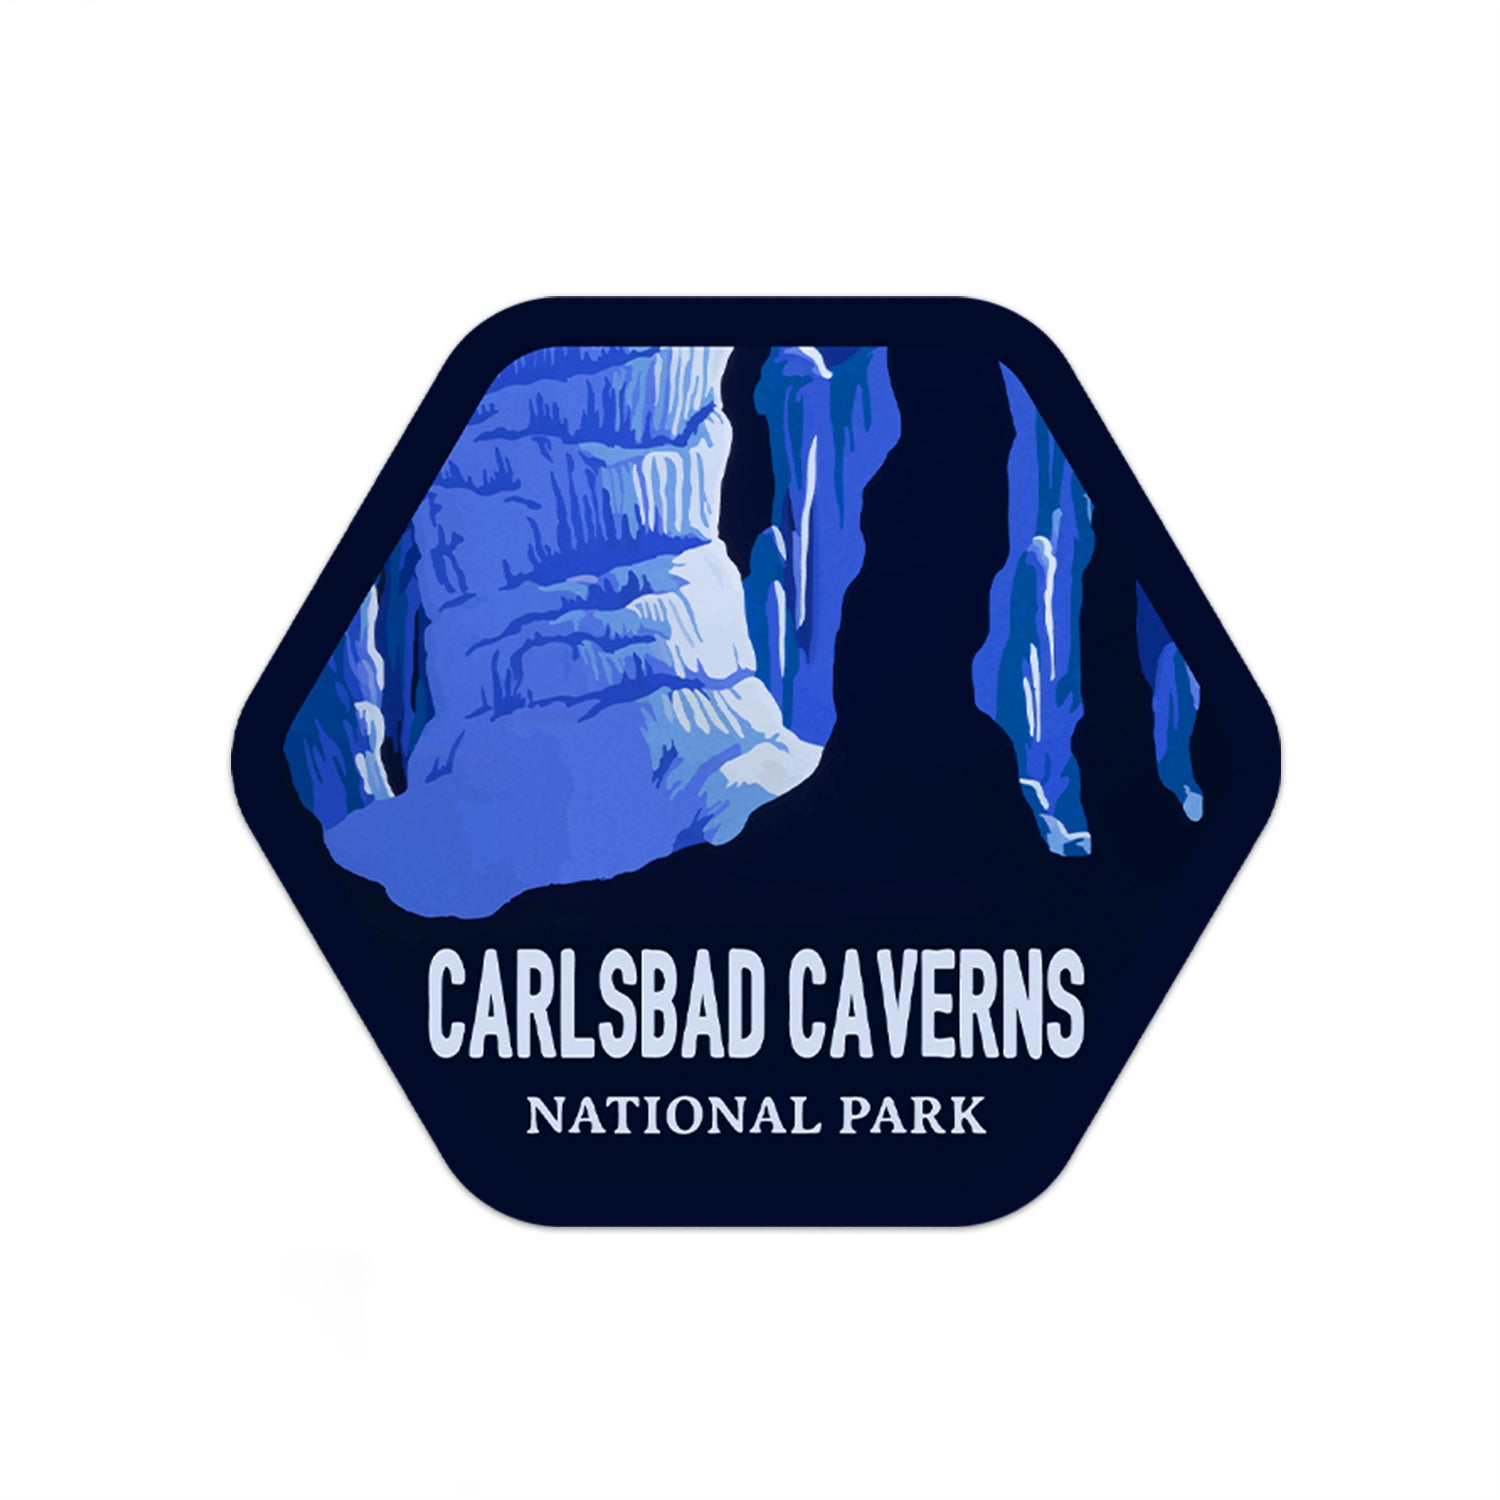 Carlsbad Caverns National Park Sticker | National Park Decal - National Park Life